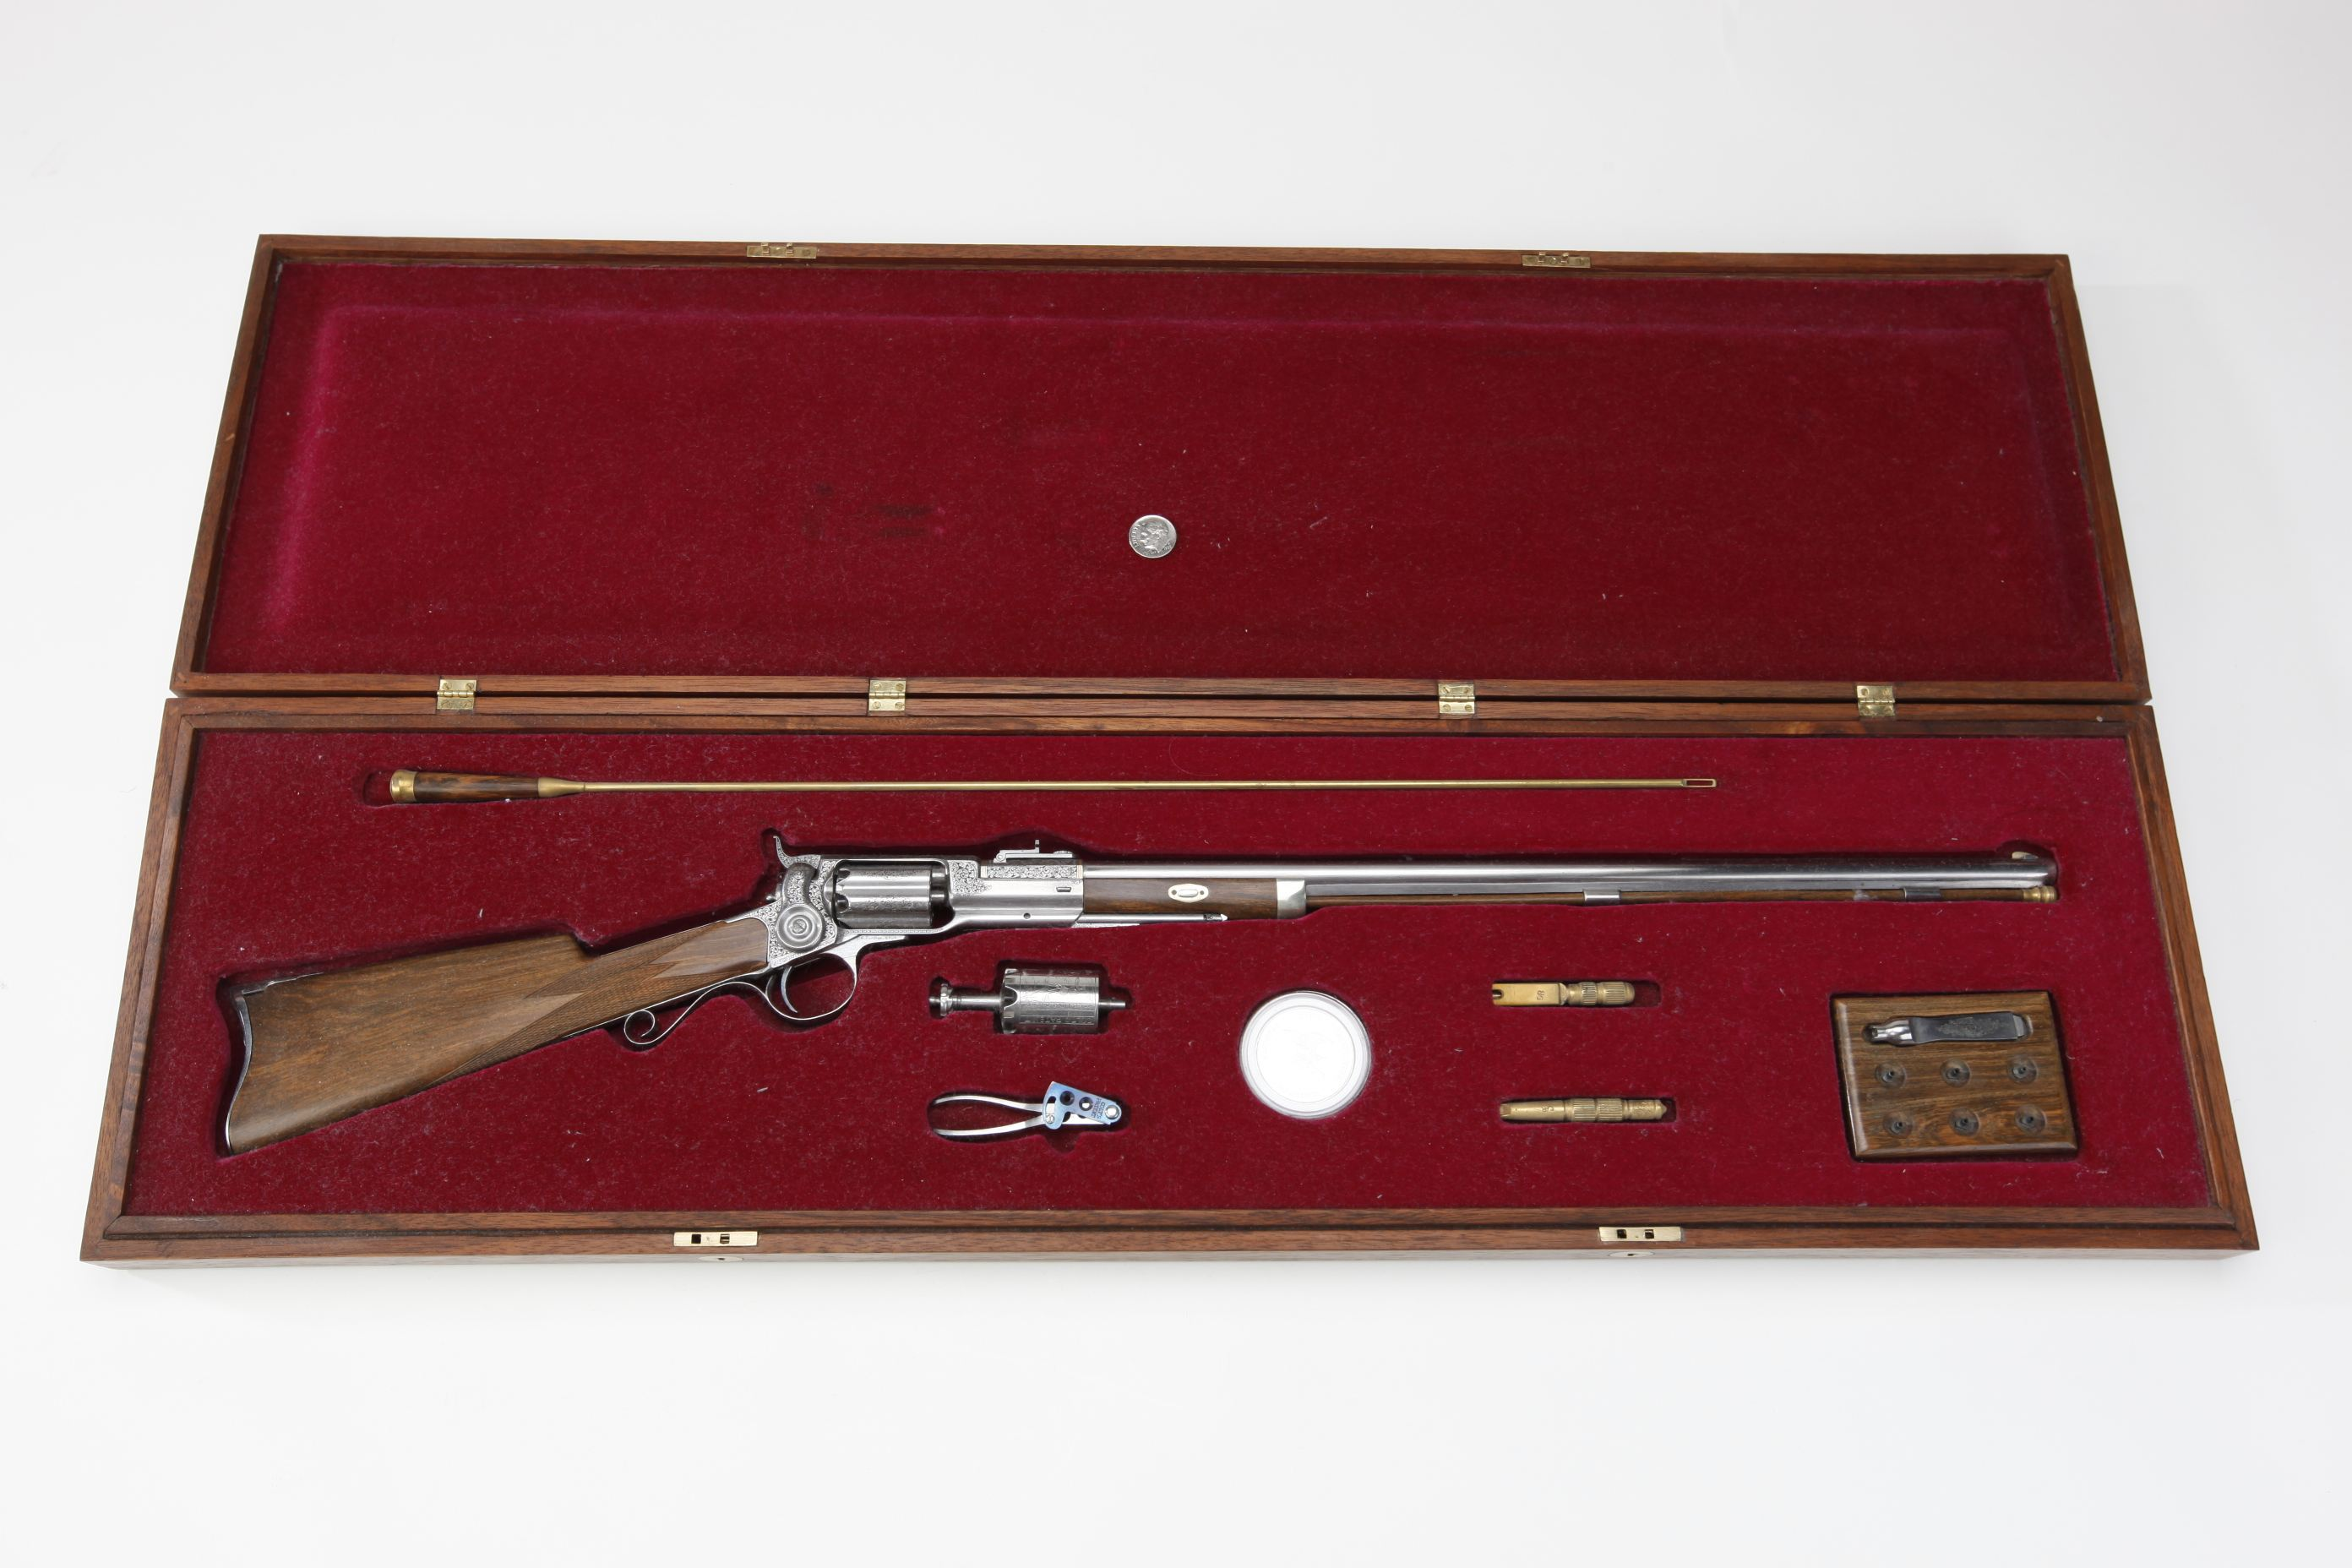 Miniature Cased Colt Revolving Rifle